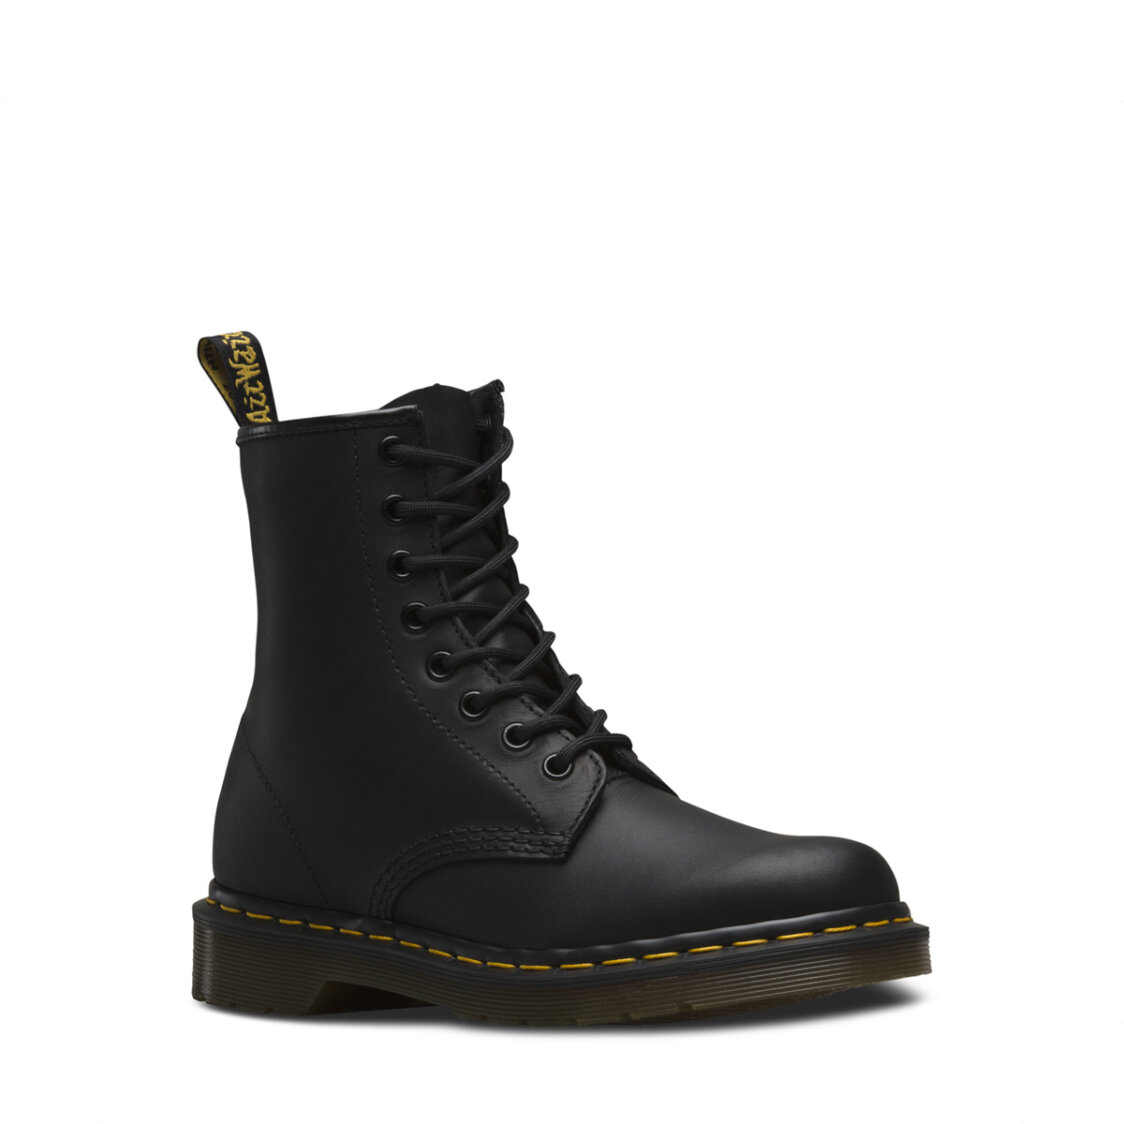 Dr Marten 1460 Greasy Leather 8 Eyelet Lace Up Boots